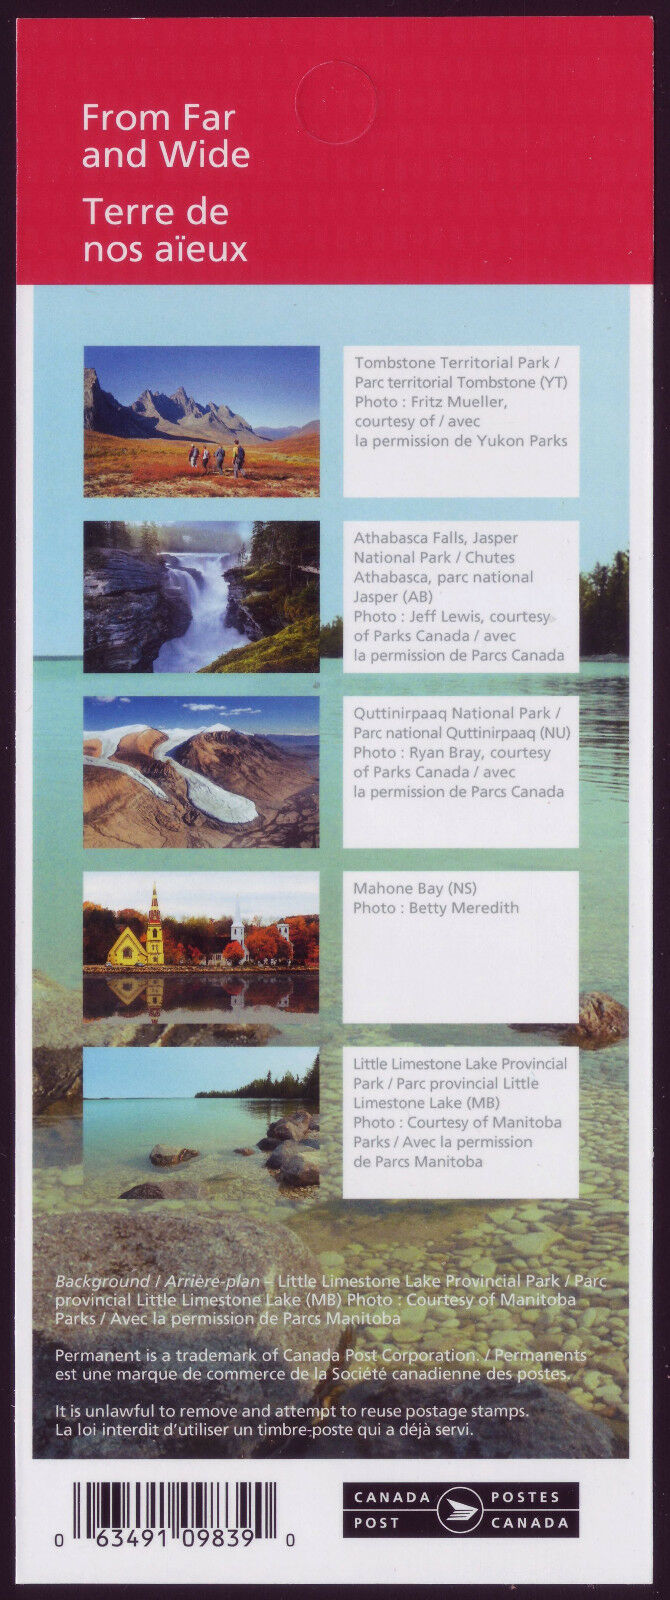 Canada - From Far and Wide (January 14, 2019) 5 designs, booklet of 10 (domestic P rate)